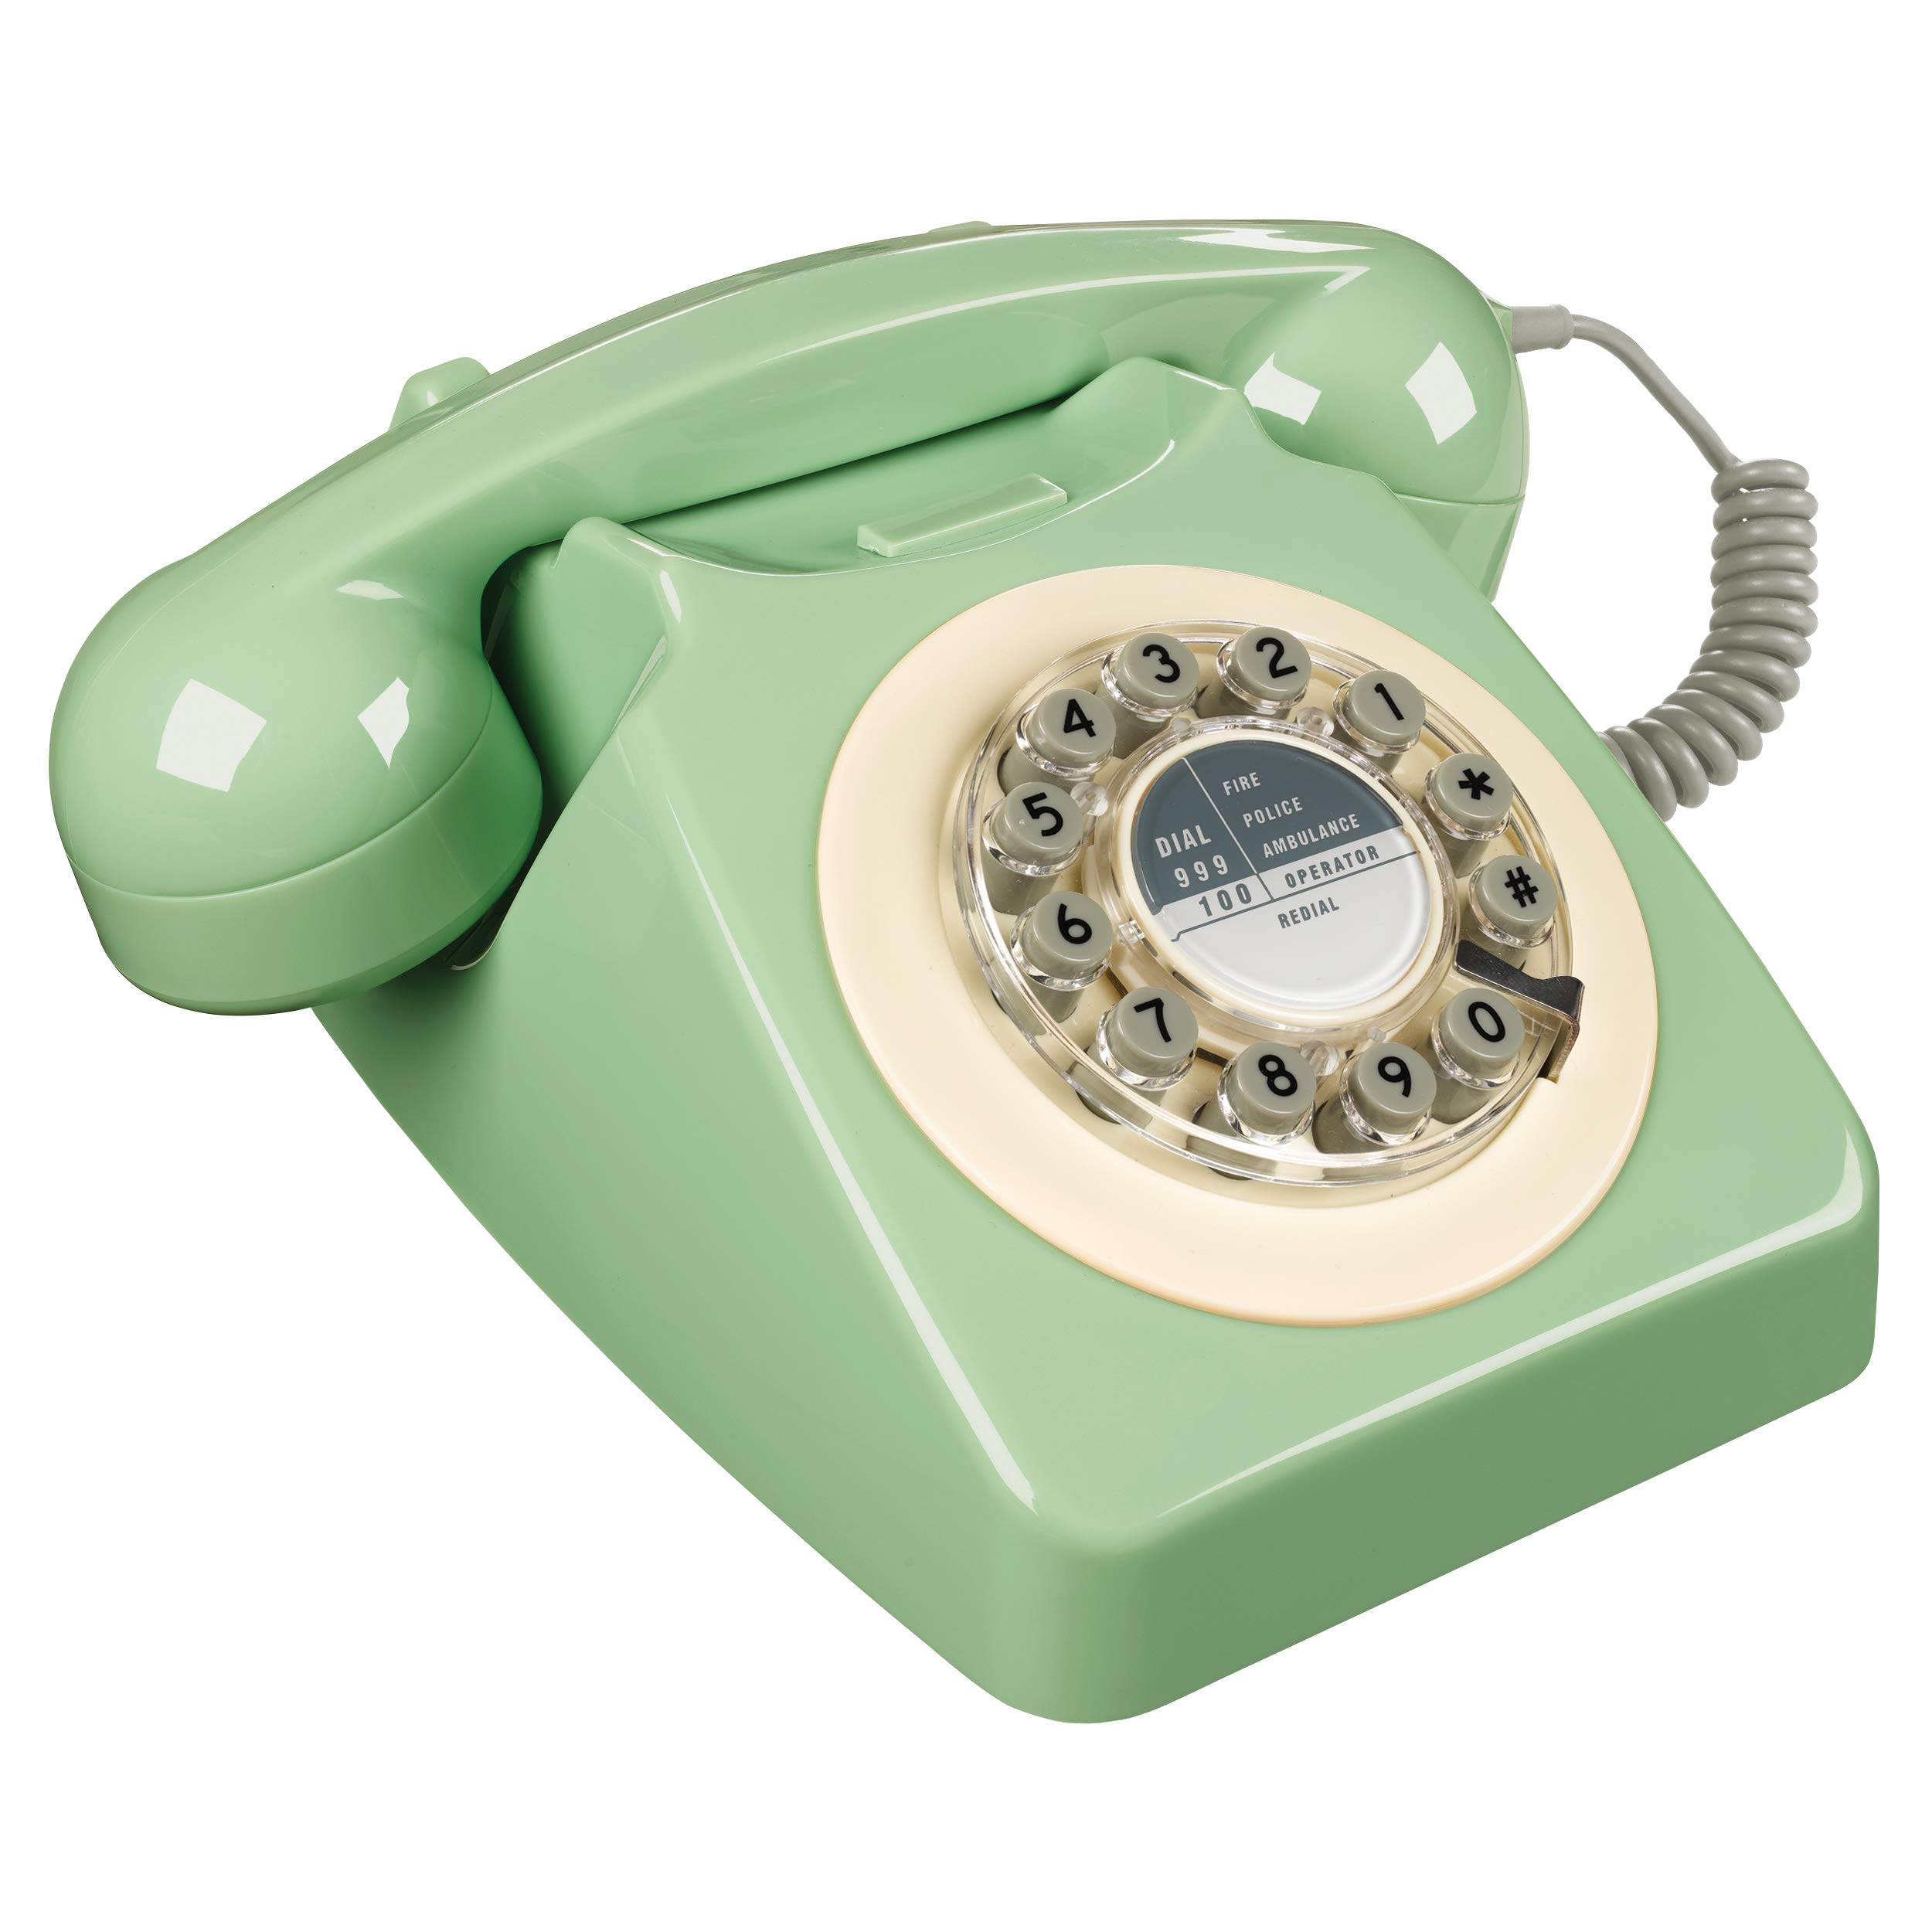 Wild Wood Rotary Design Retro Landline Phone for Home, Swedish Green